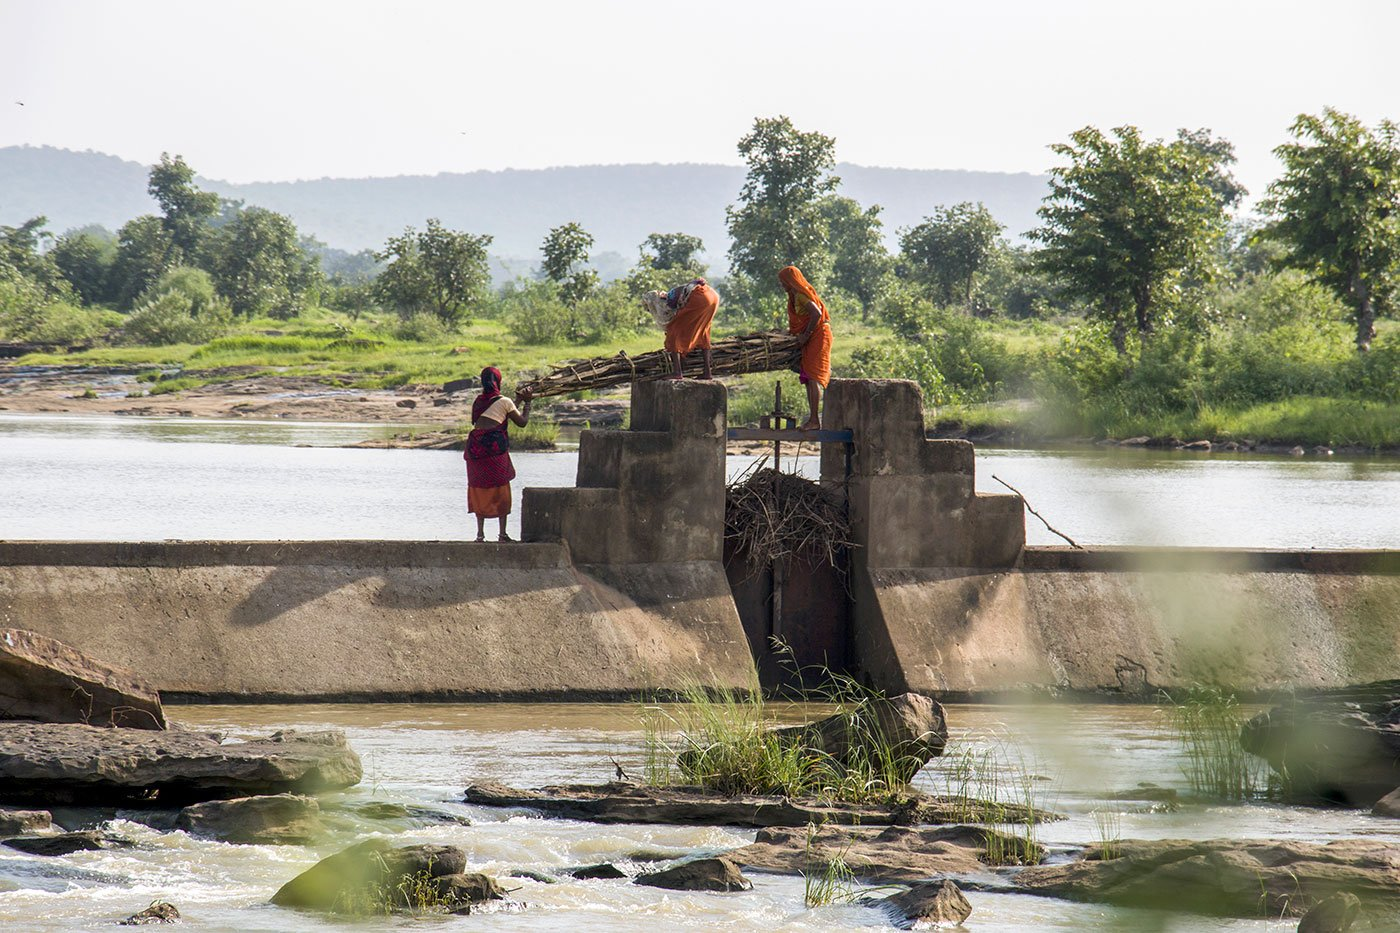 Women crossing the sluice gate of a dam, carrying their daily load of firewood